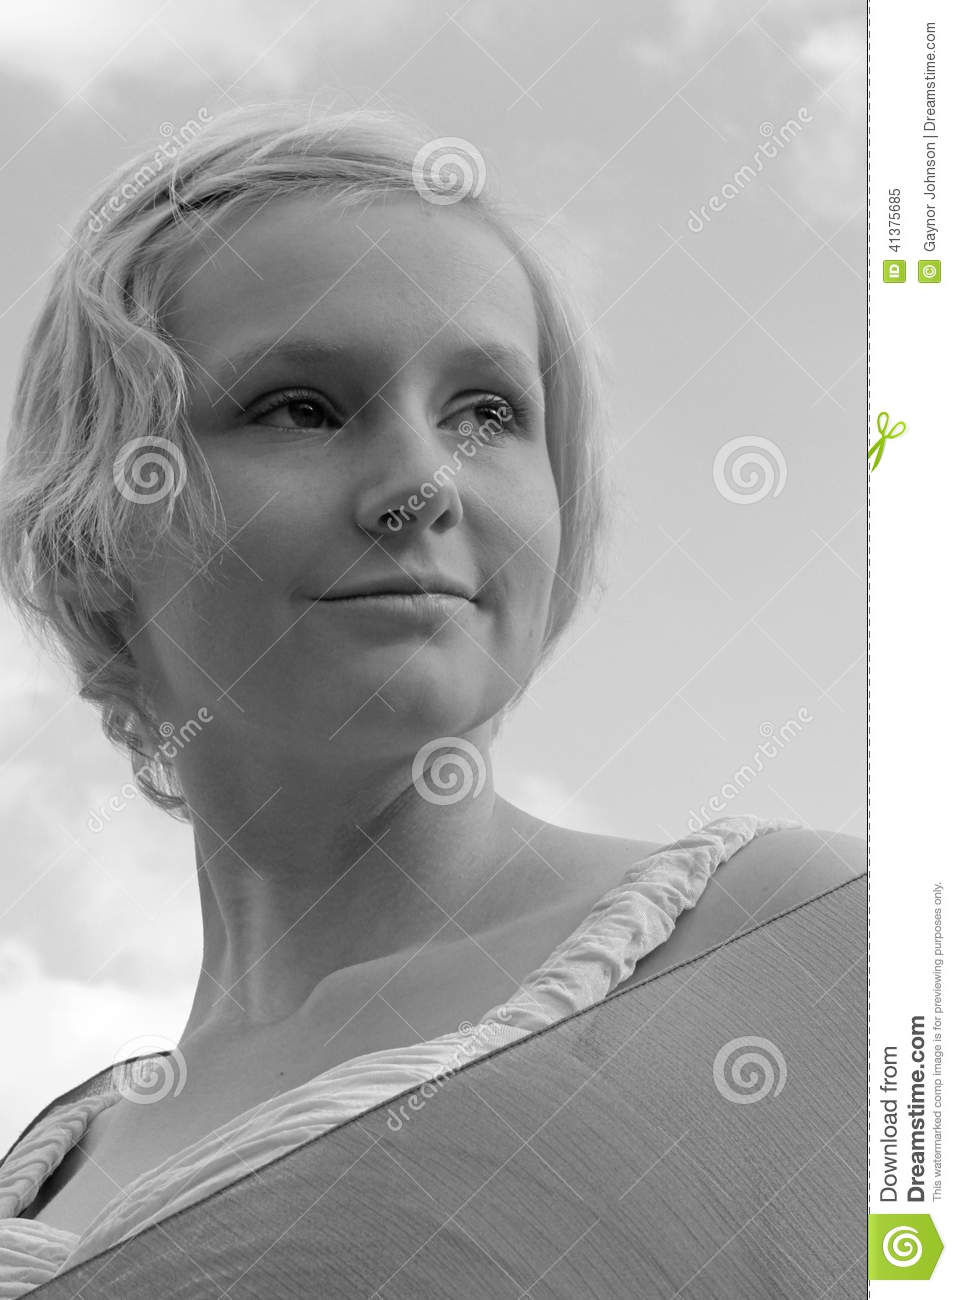 Monochrome image of young caucasian woman against a pale sky